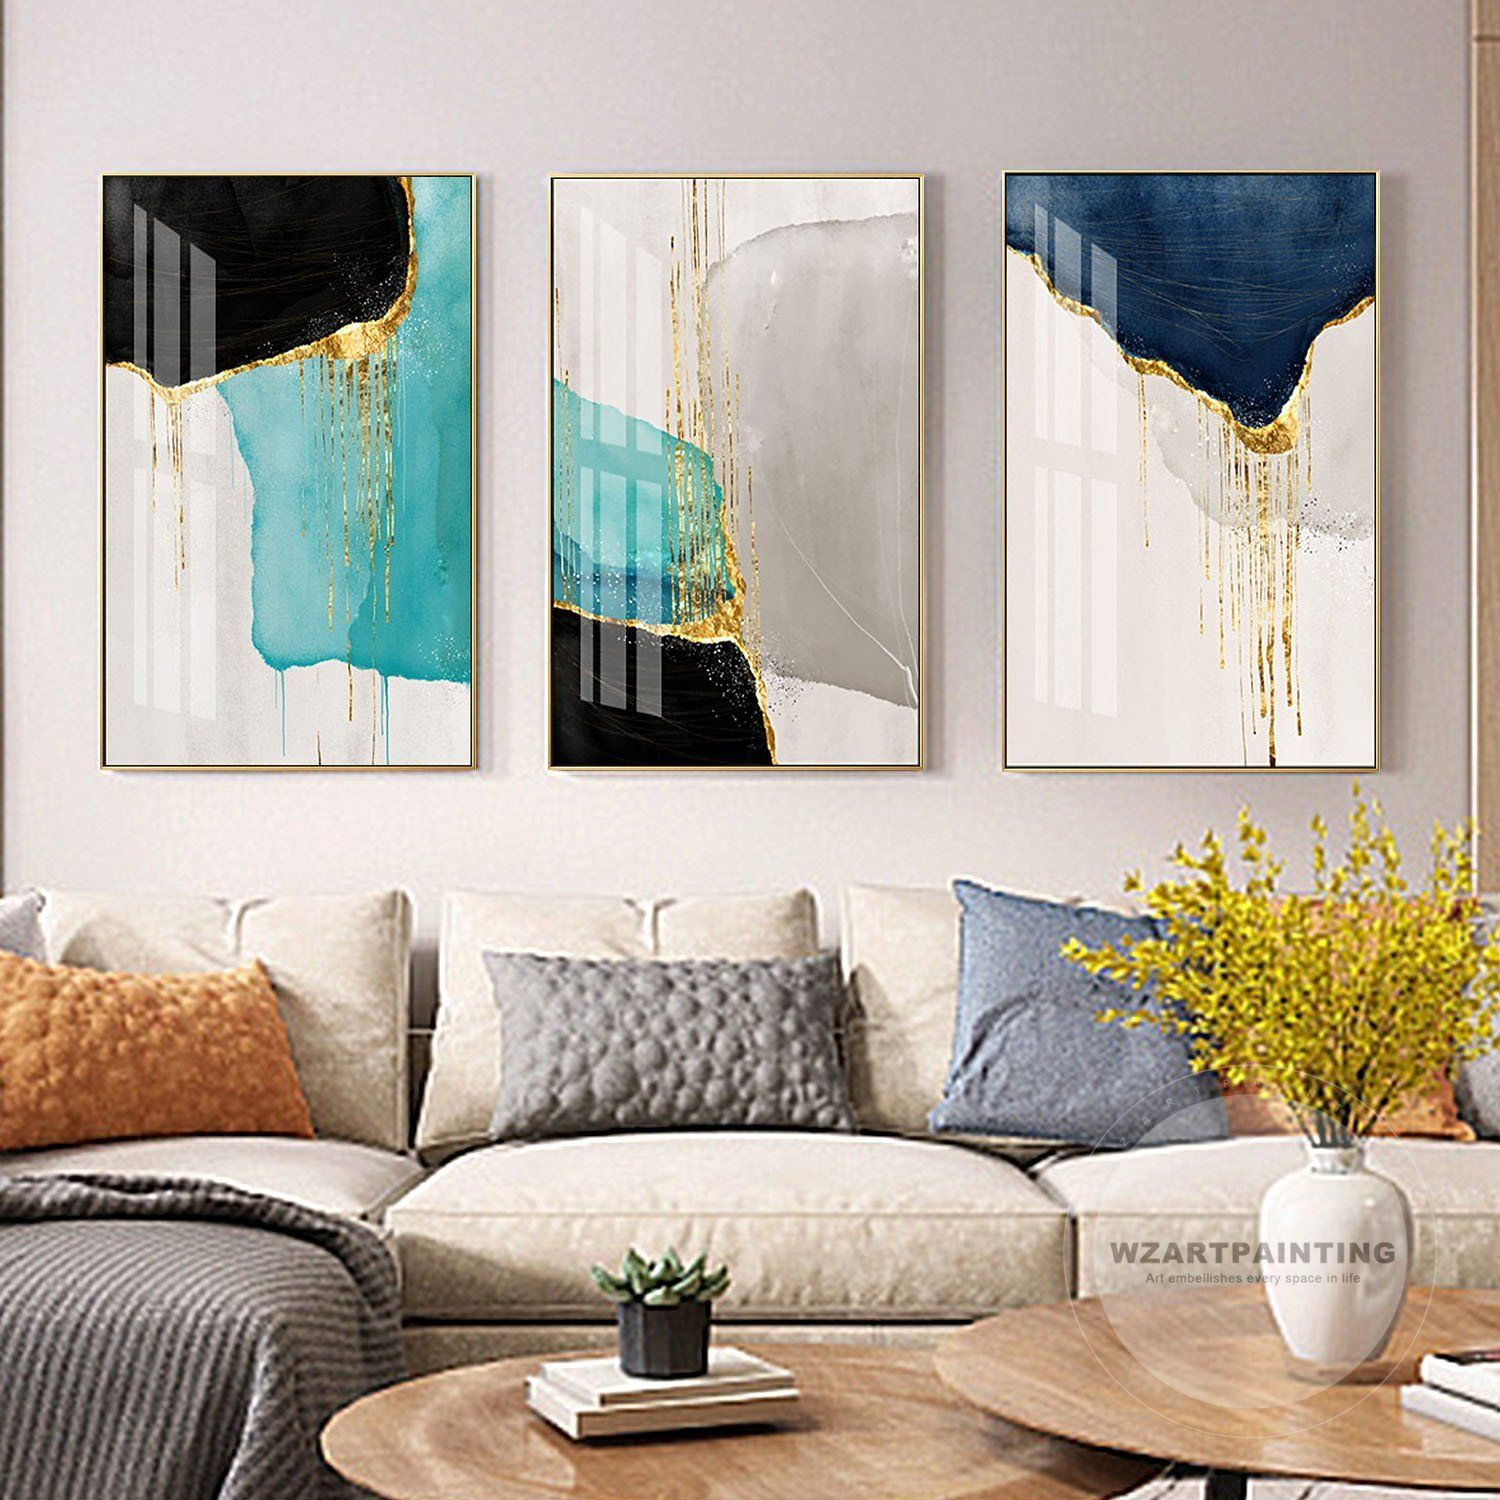 Framed Wall Art 3 Piece Set Of 3 Prints Abstract Gold Navy Blue